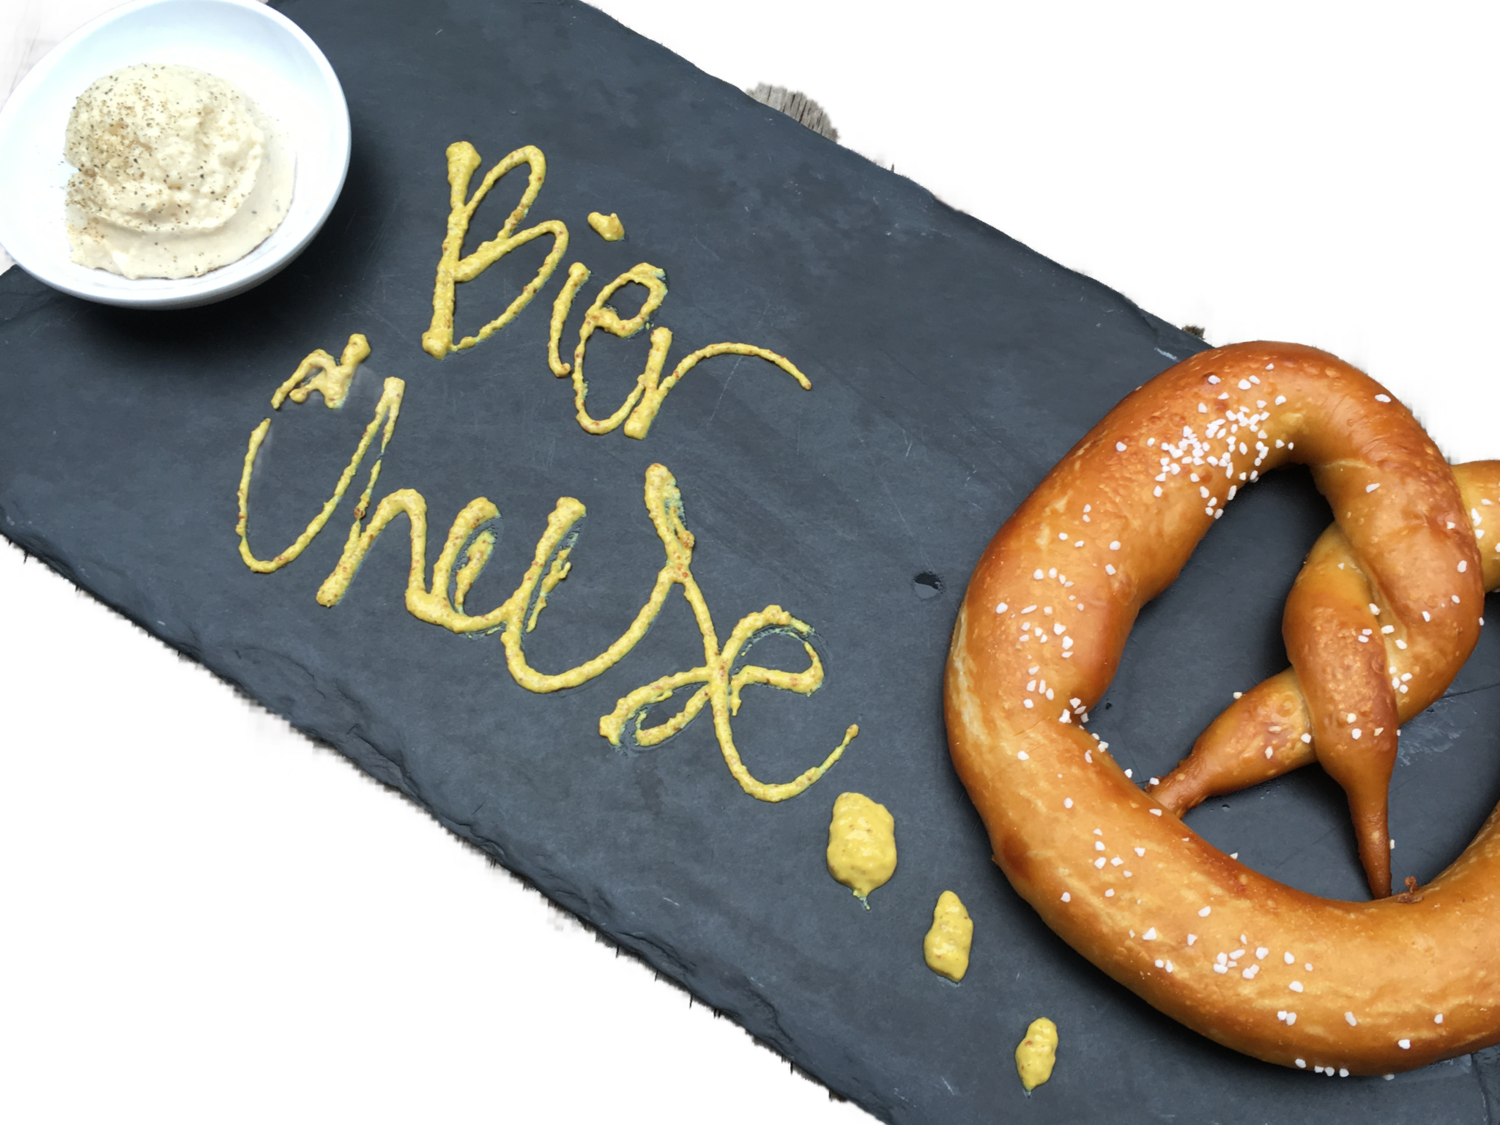 Pretzel w/ Bier Cheese